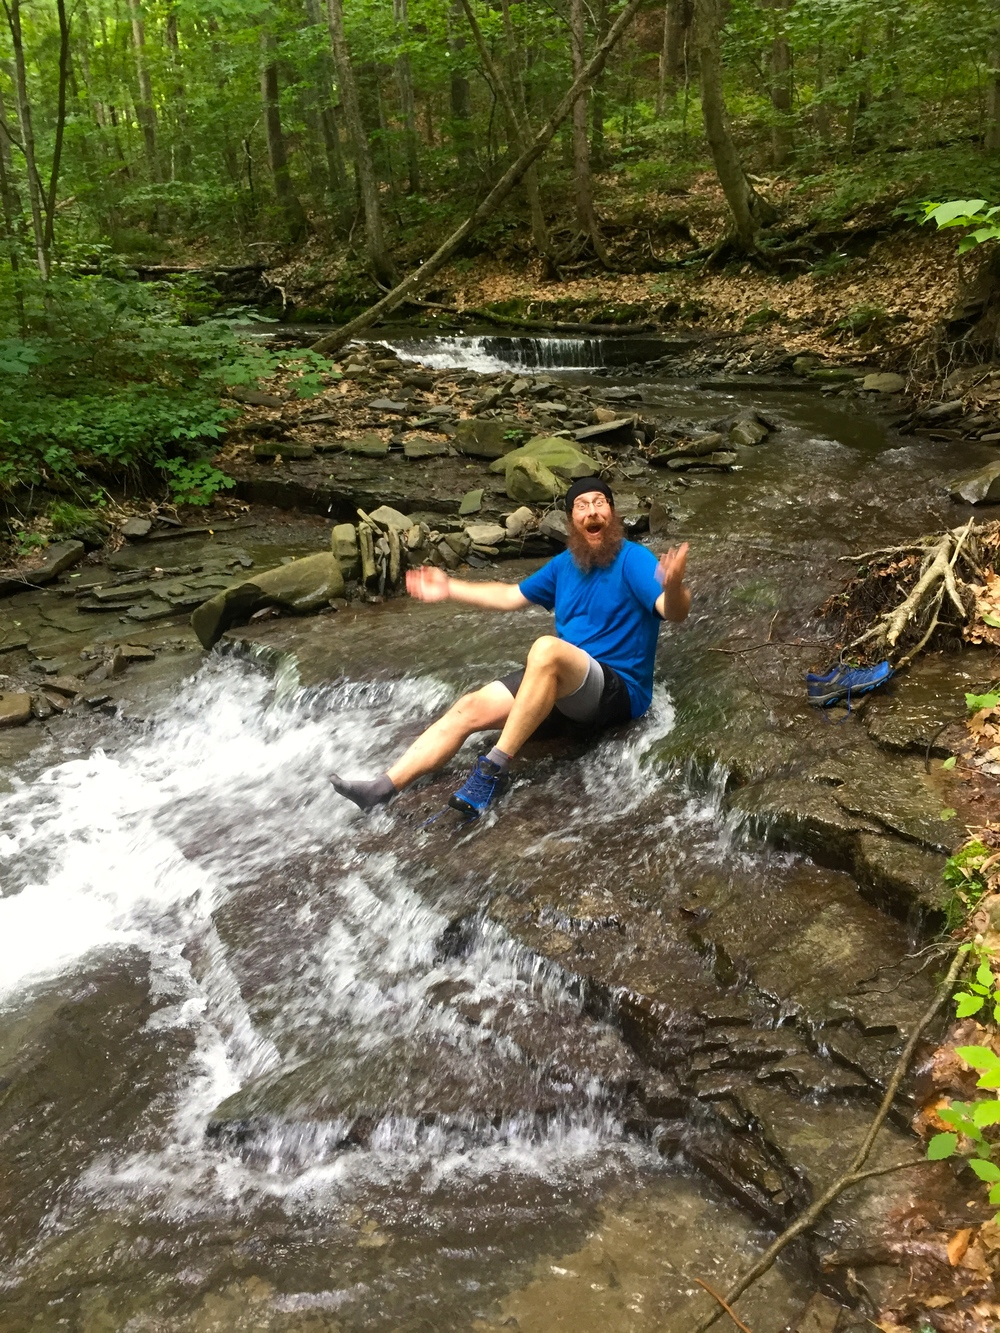 NoKey playing in a creek, washing off the mud and trying to escape the mosquitos!